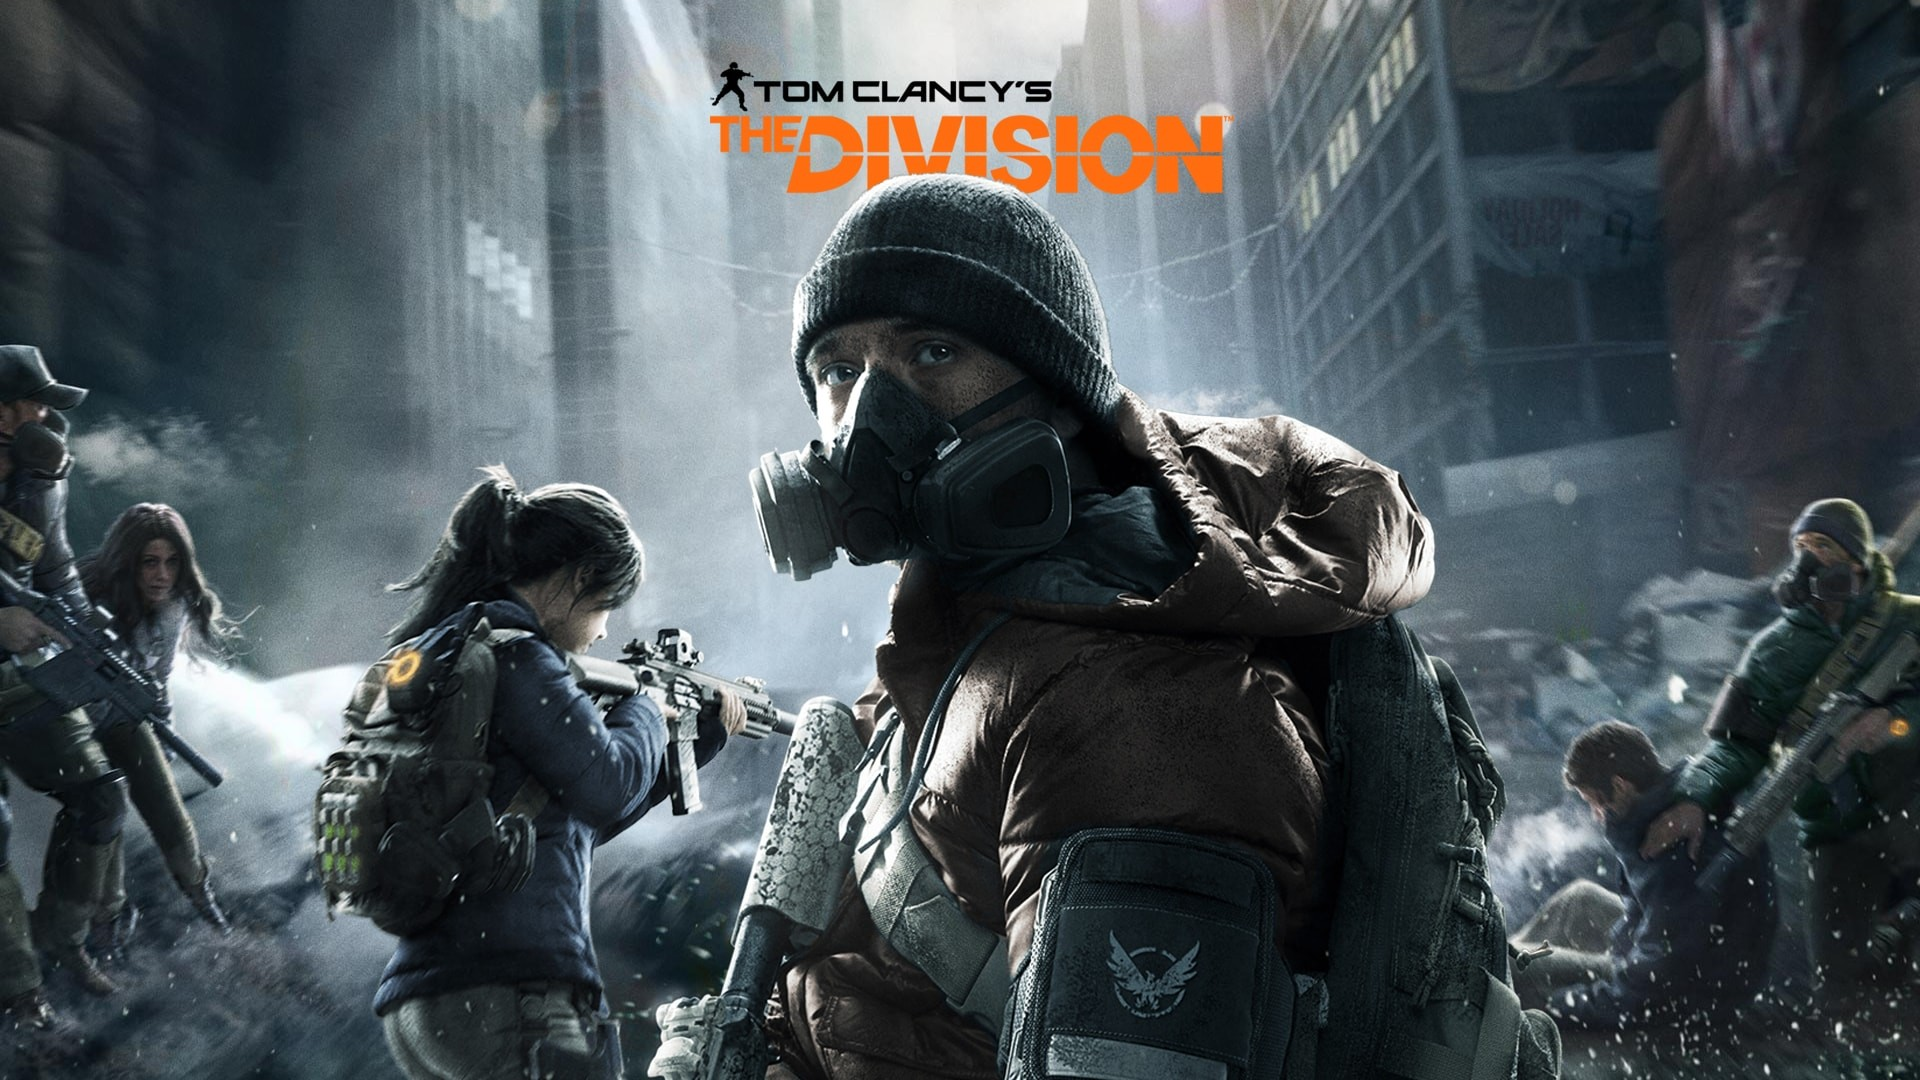 … Tom Clancy's The Division Wallpapers hd